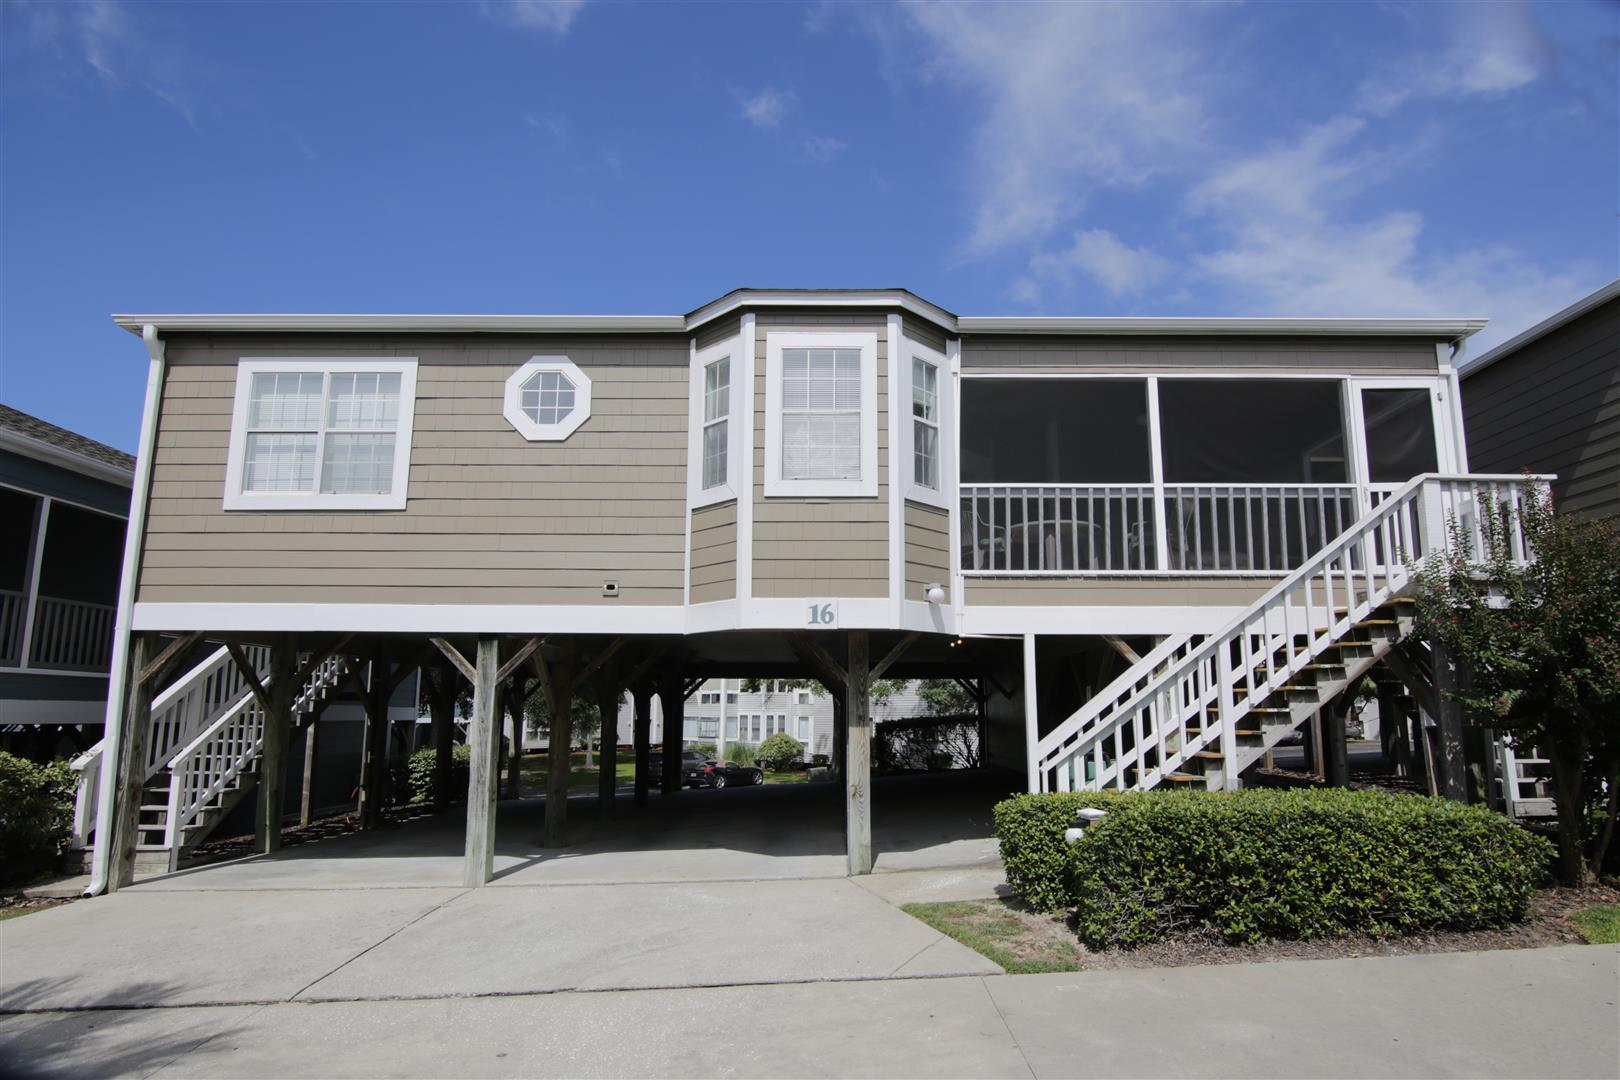 Description. Arbor House  16 2nd Row   Beyond  P    Myrtle Beach Condo Rental